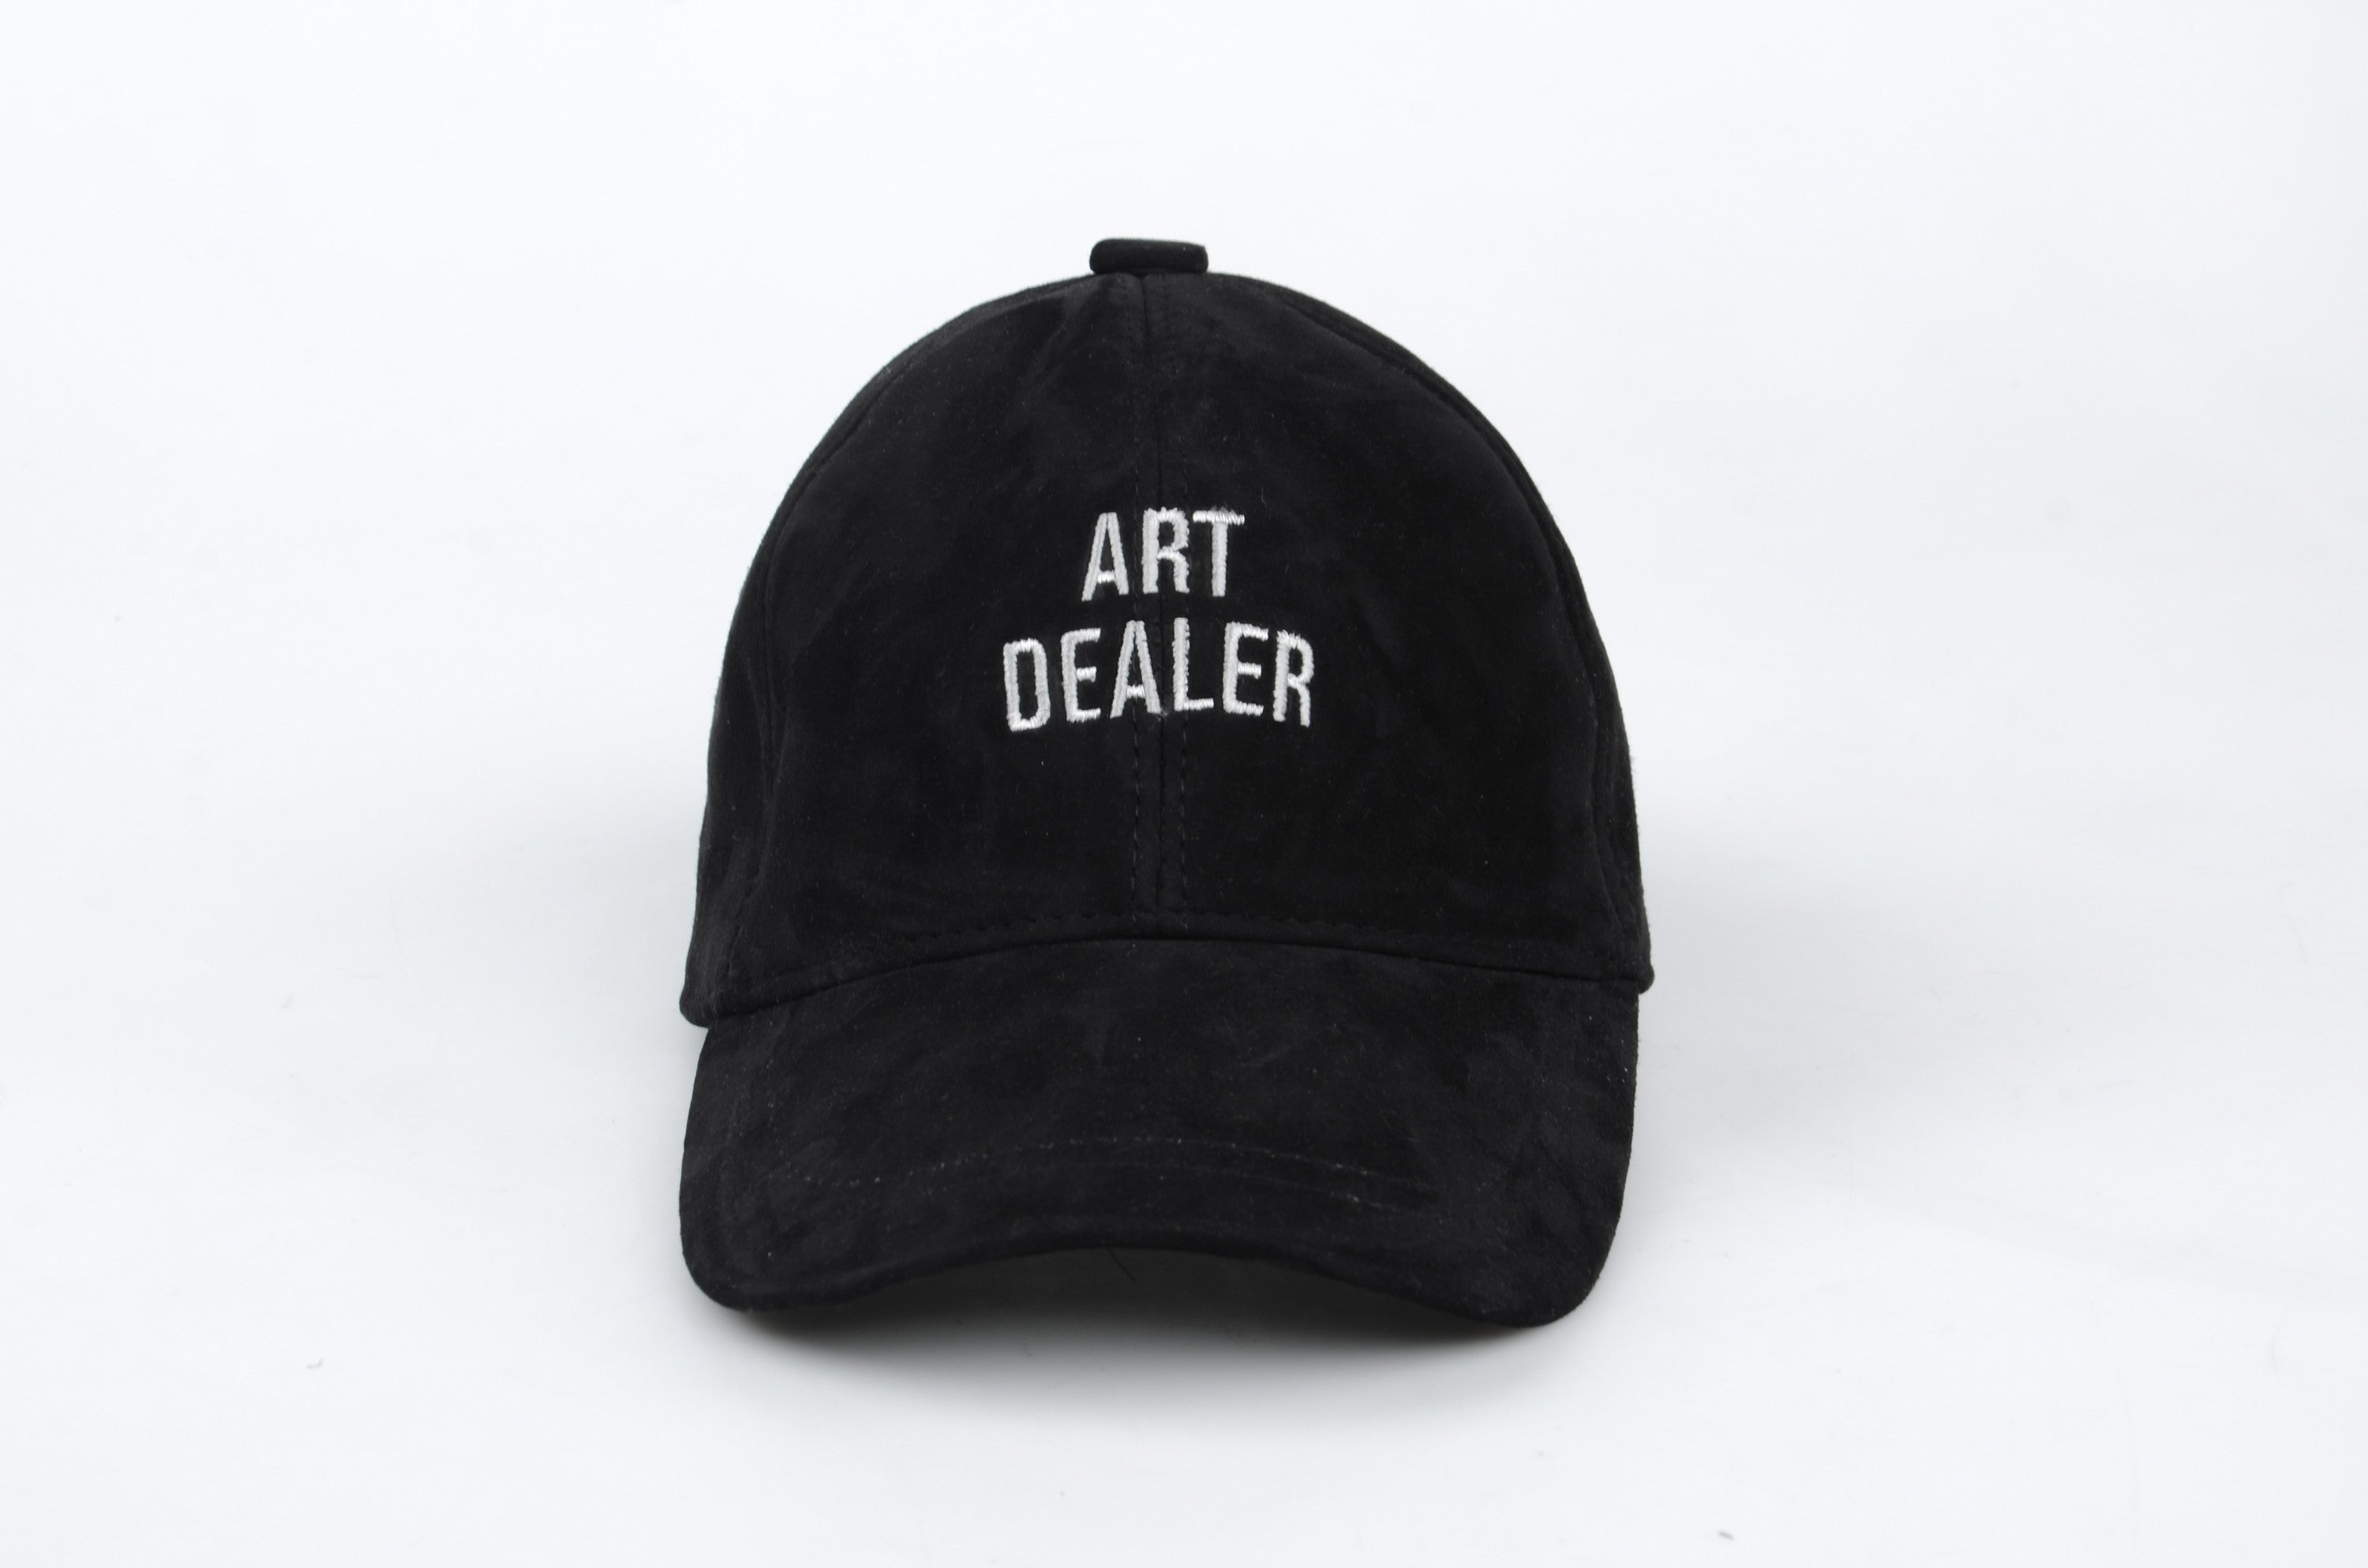 Art Dealer - Black